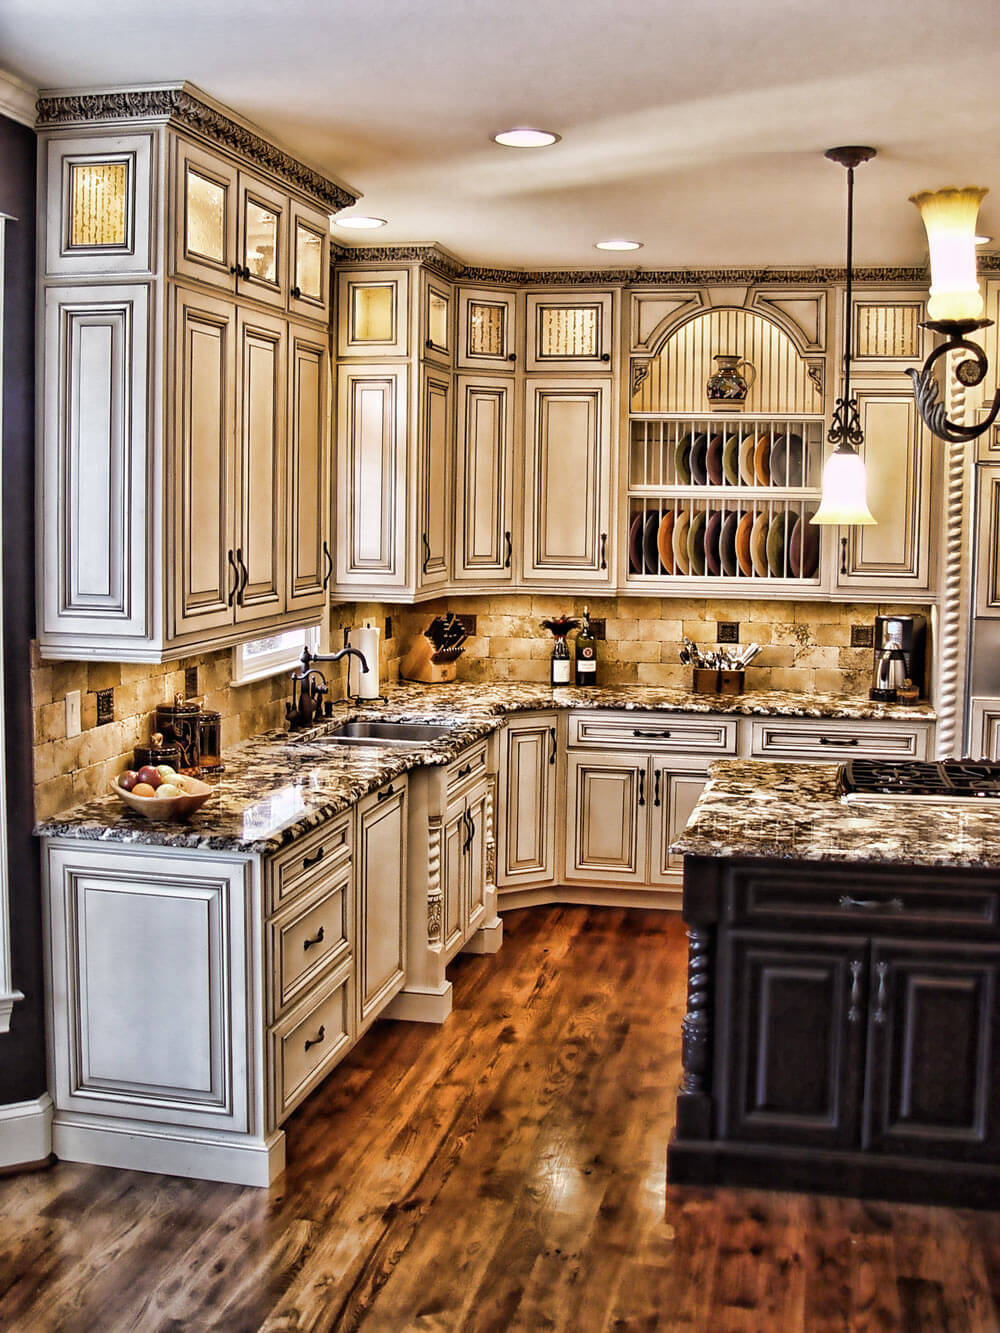 Attrayant Maison Chic Rustic Kitchen Cabinet Designs